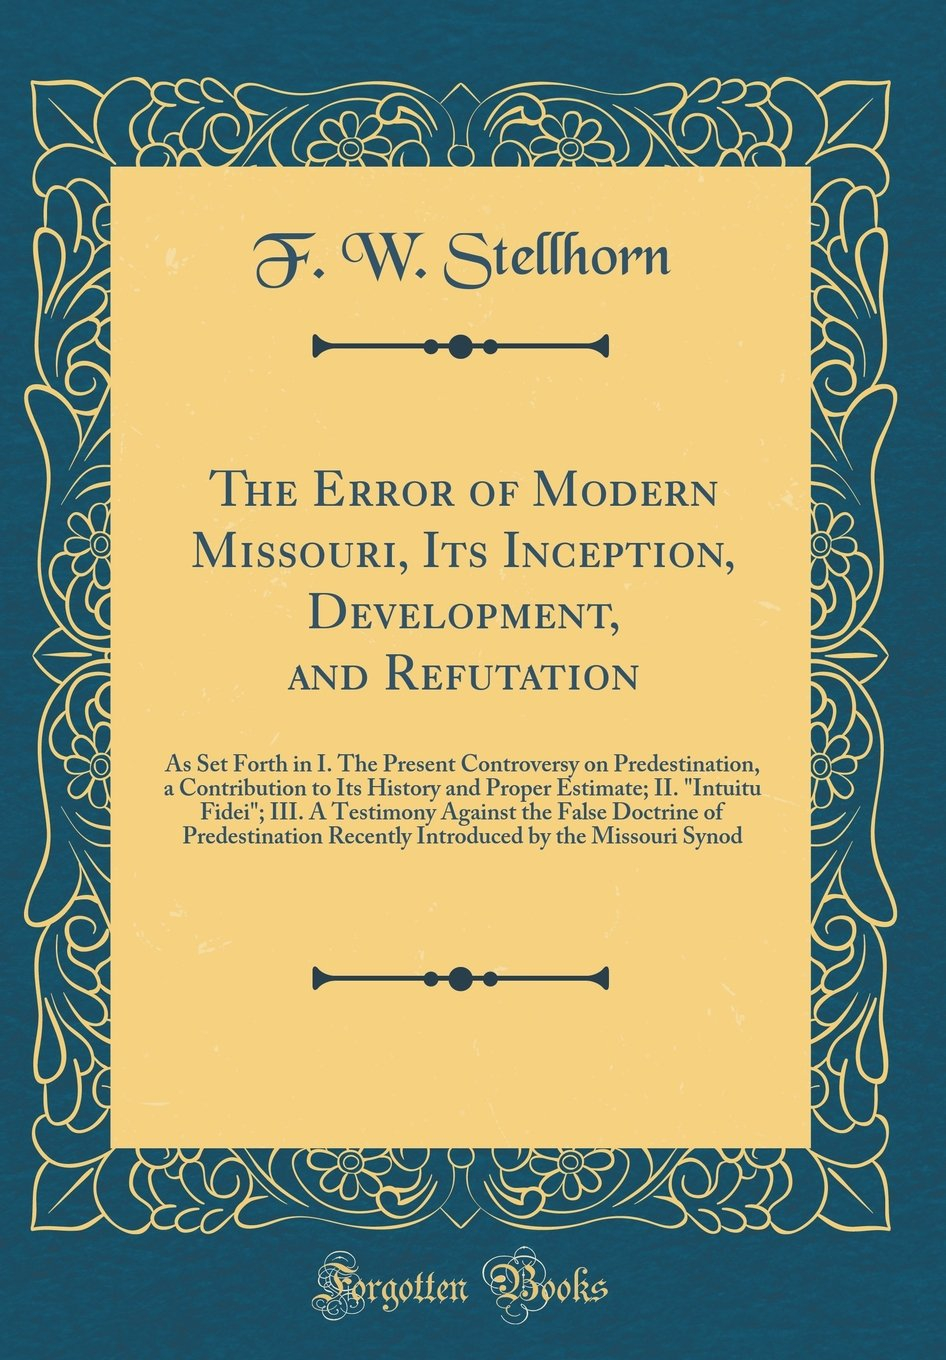 Download The Error of Modern Missouri, Its Inception, Development, and Refutation: As Set Forth in I. The Present Controversy on Predestination, a Contribution ... A Testimony Against the False Doctrine of pdf